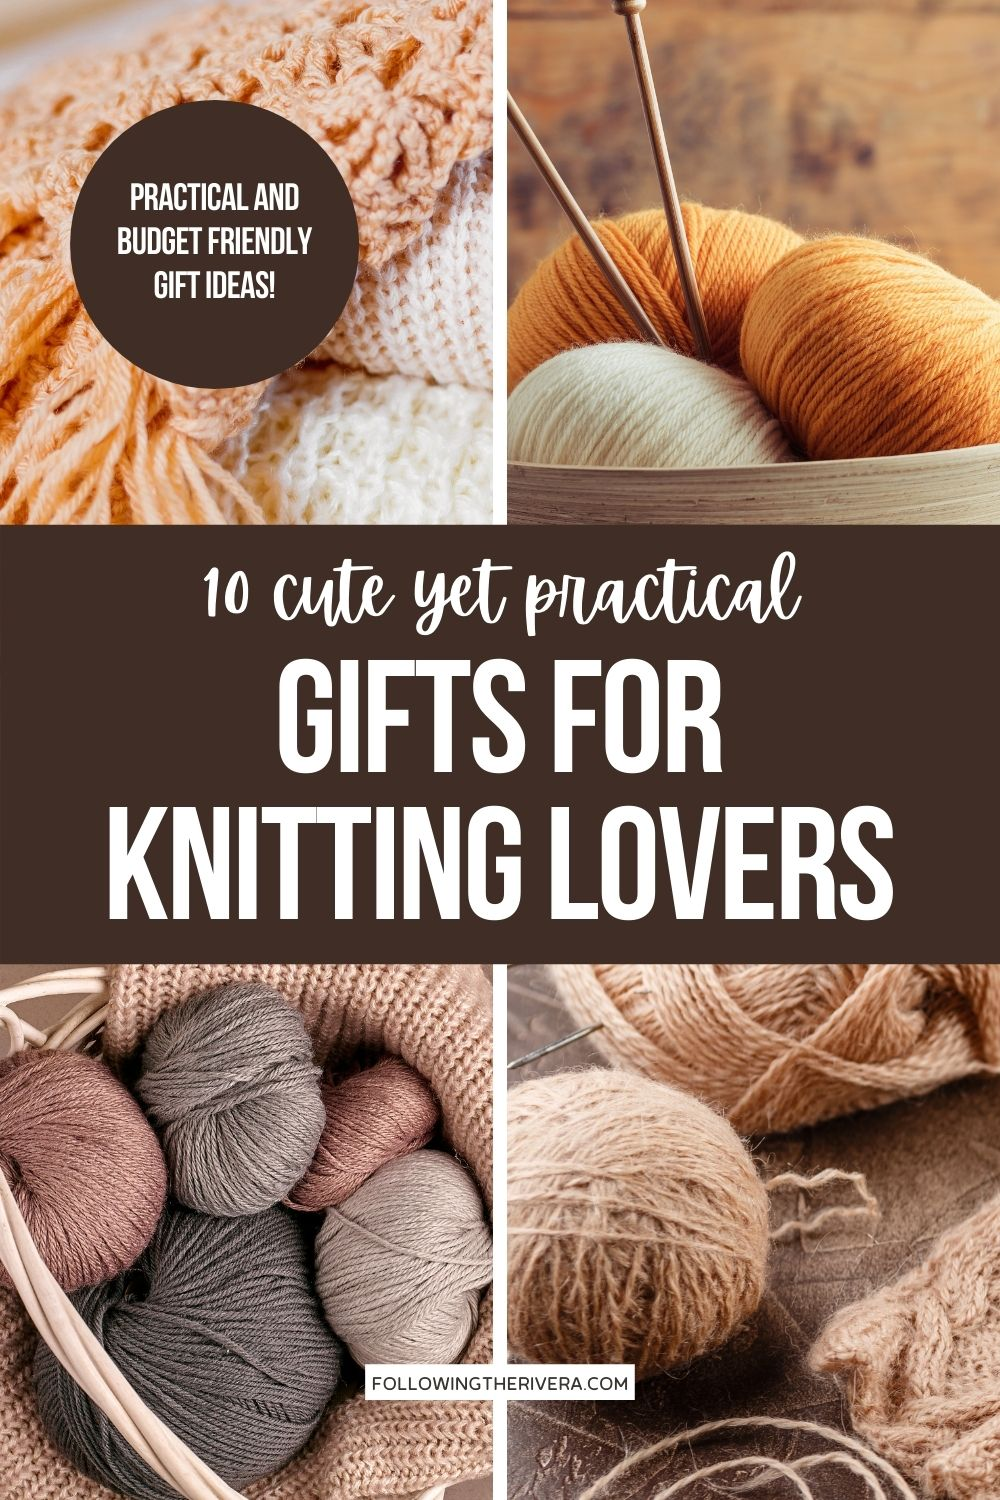 Photos of yarn and knitting needles - knitting gift ideas